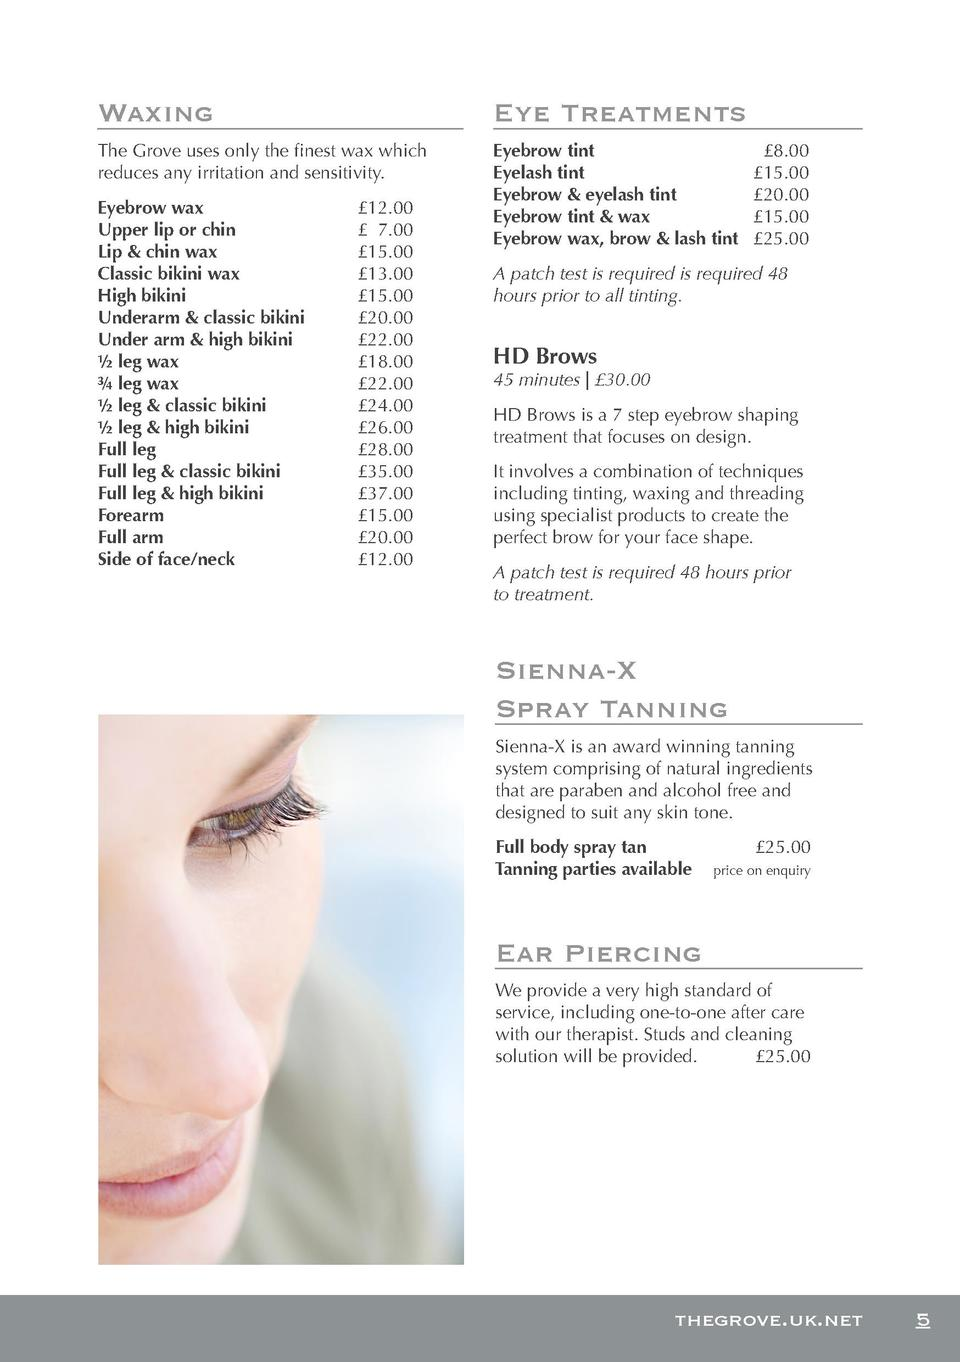 Waxing  Eye Treatments  The Grove uses only the finest wax which reduces any irritation and sensitivity.  Eyebrow tint    ...